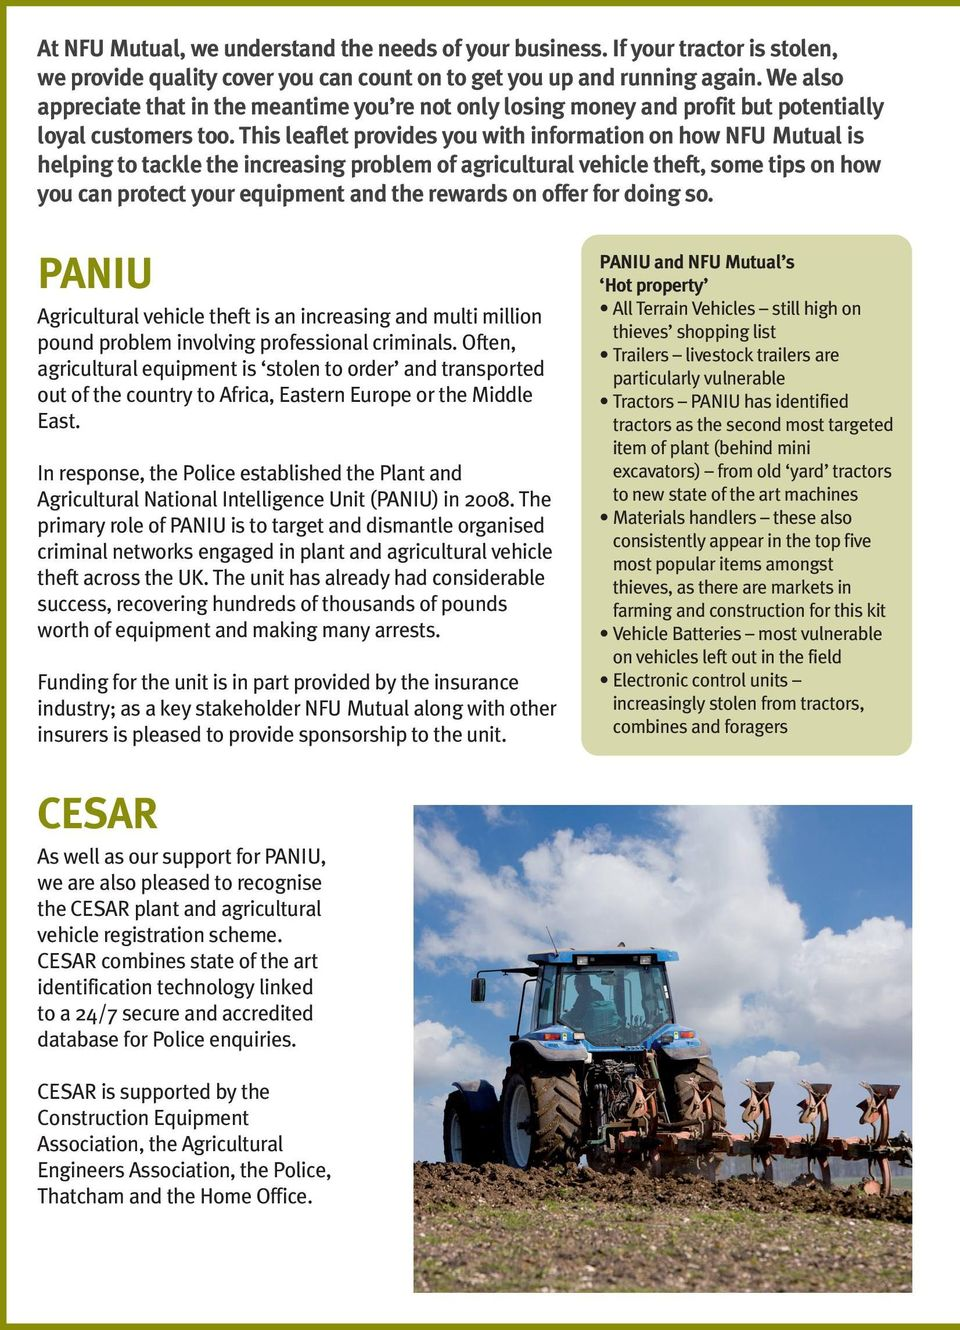 This leaflet provides you with information on how NFU Mutual is helping to tackle the increasing problem of agricultural vehicle theft, some tips on how you can protect your equipment and the rewards